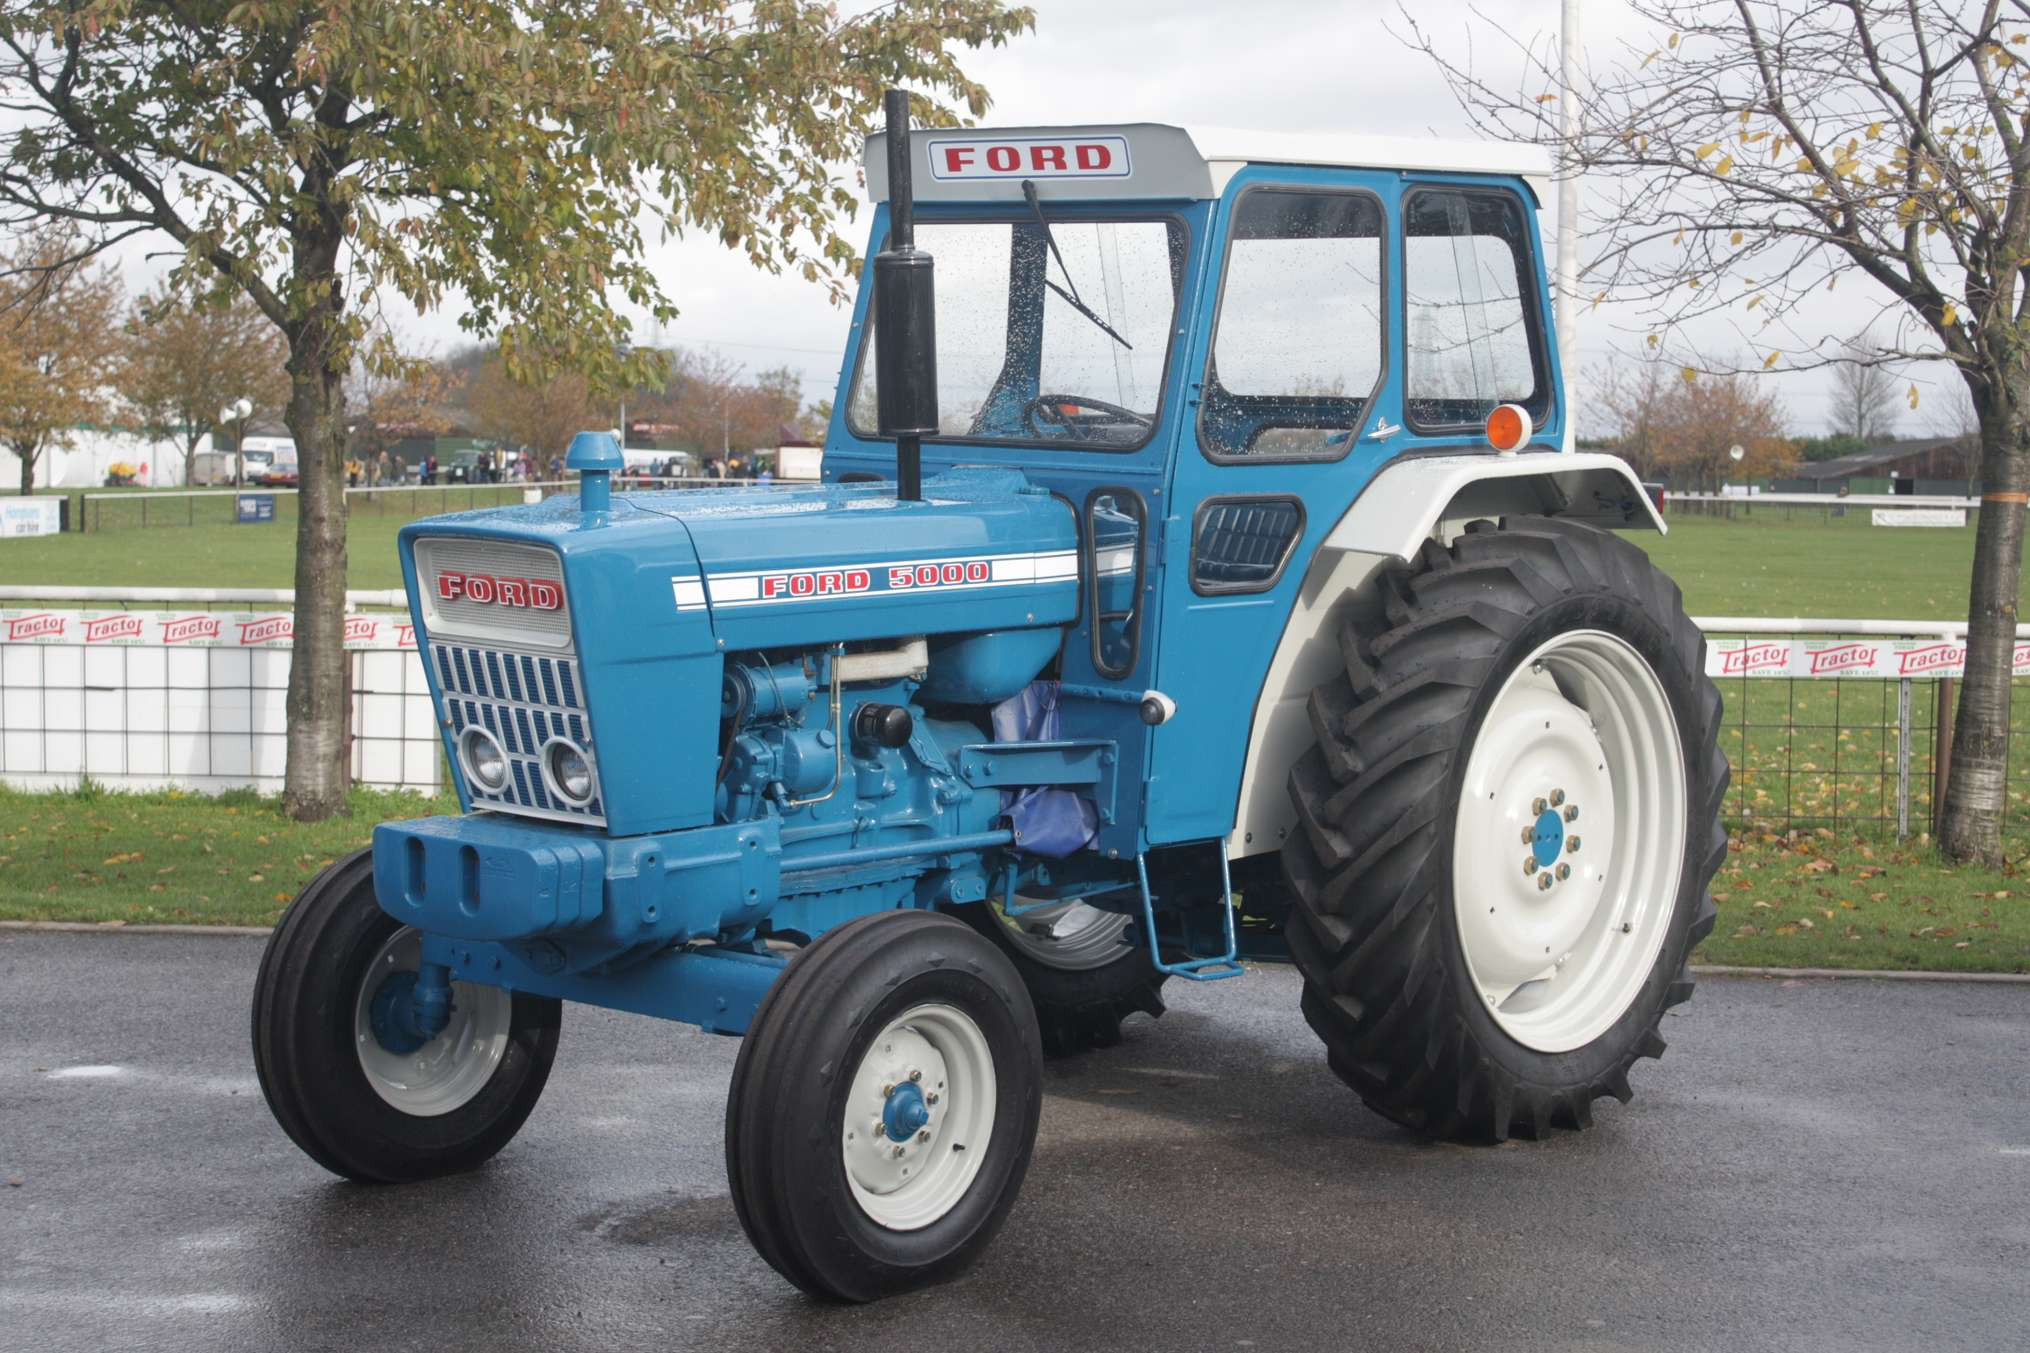 Ford 5000 #8958950